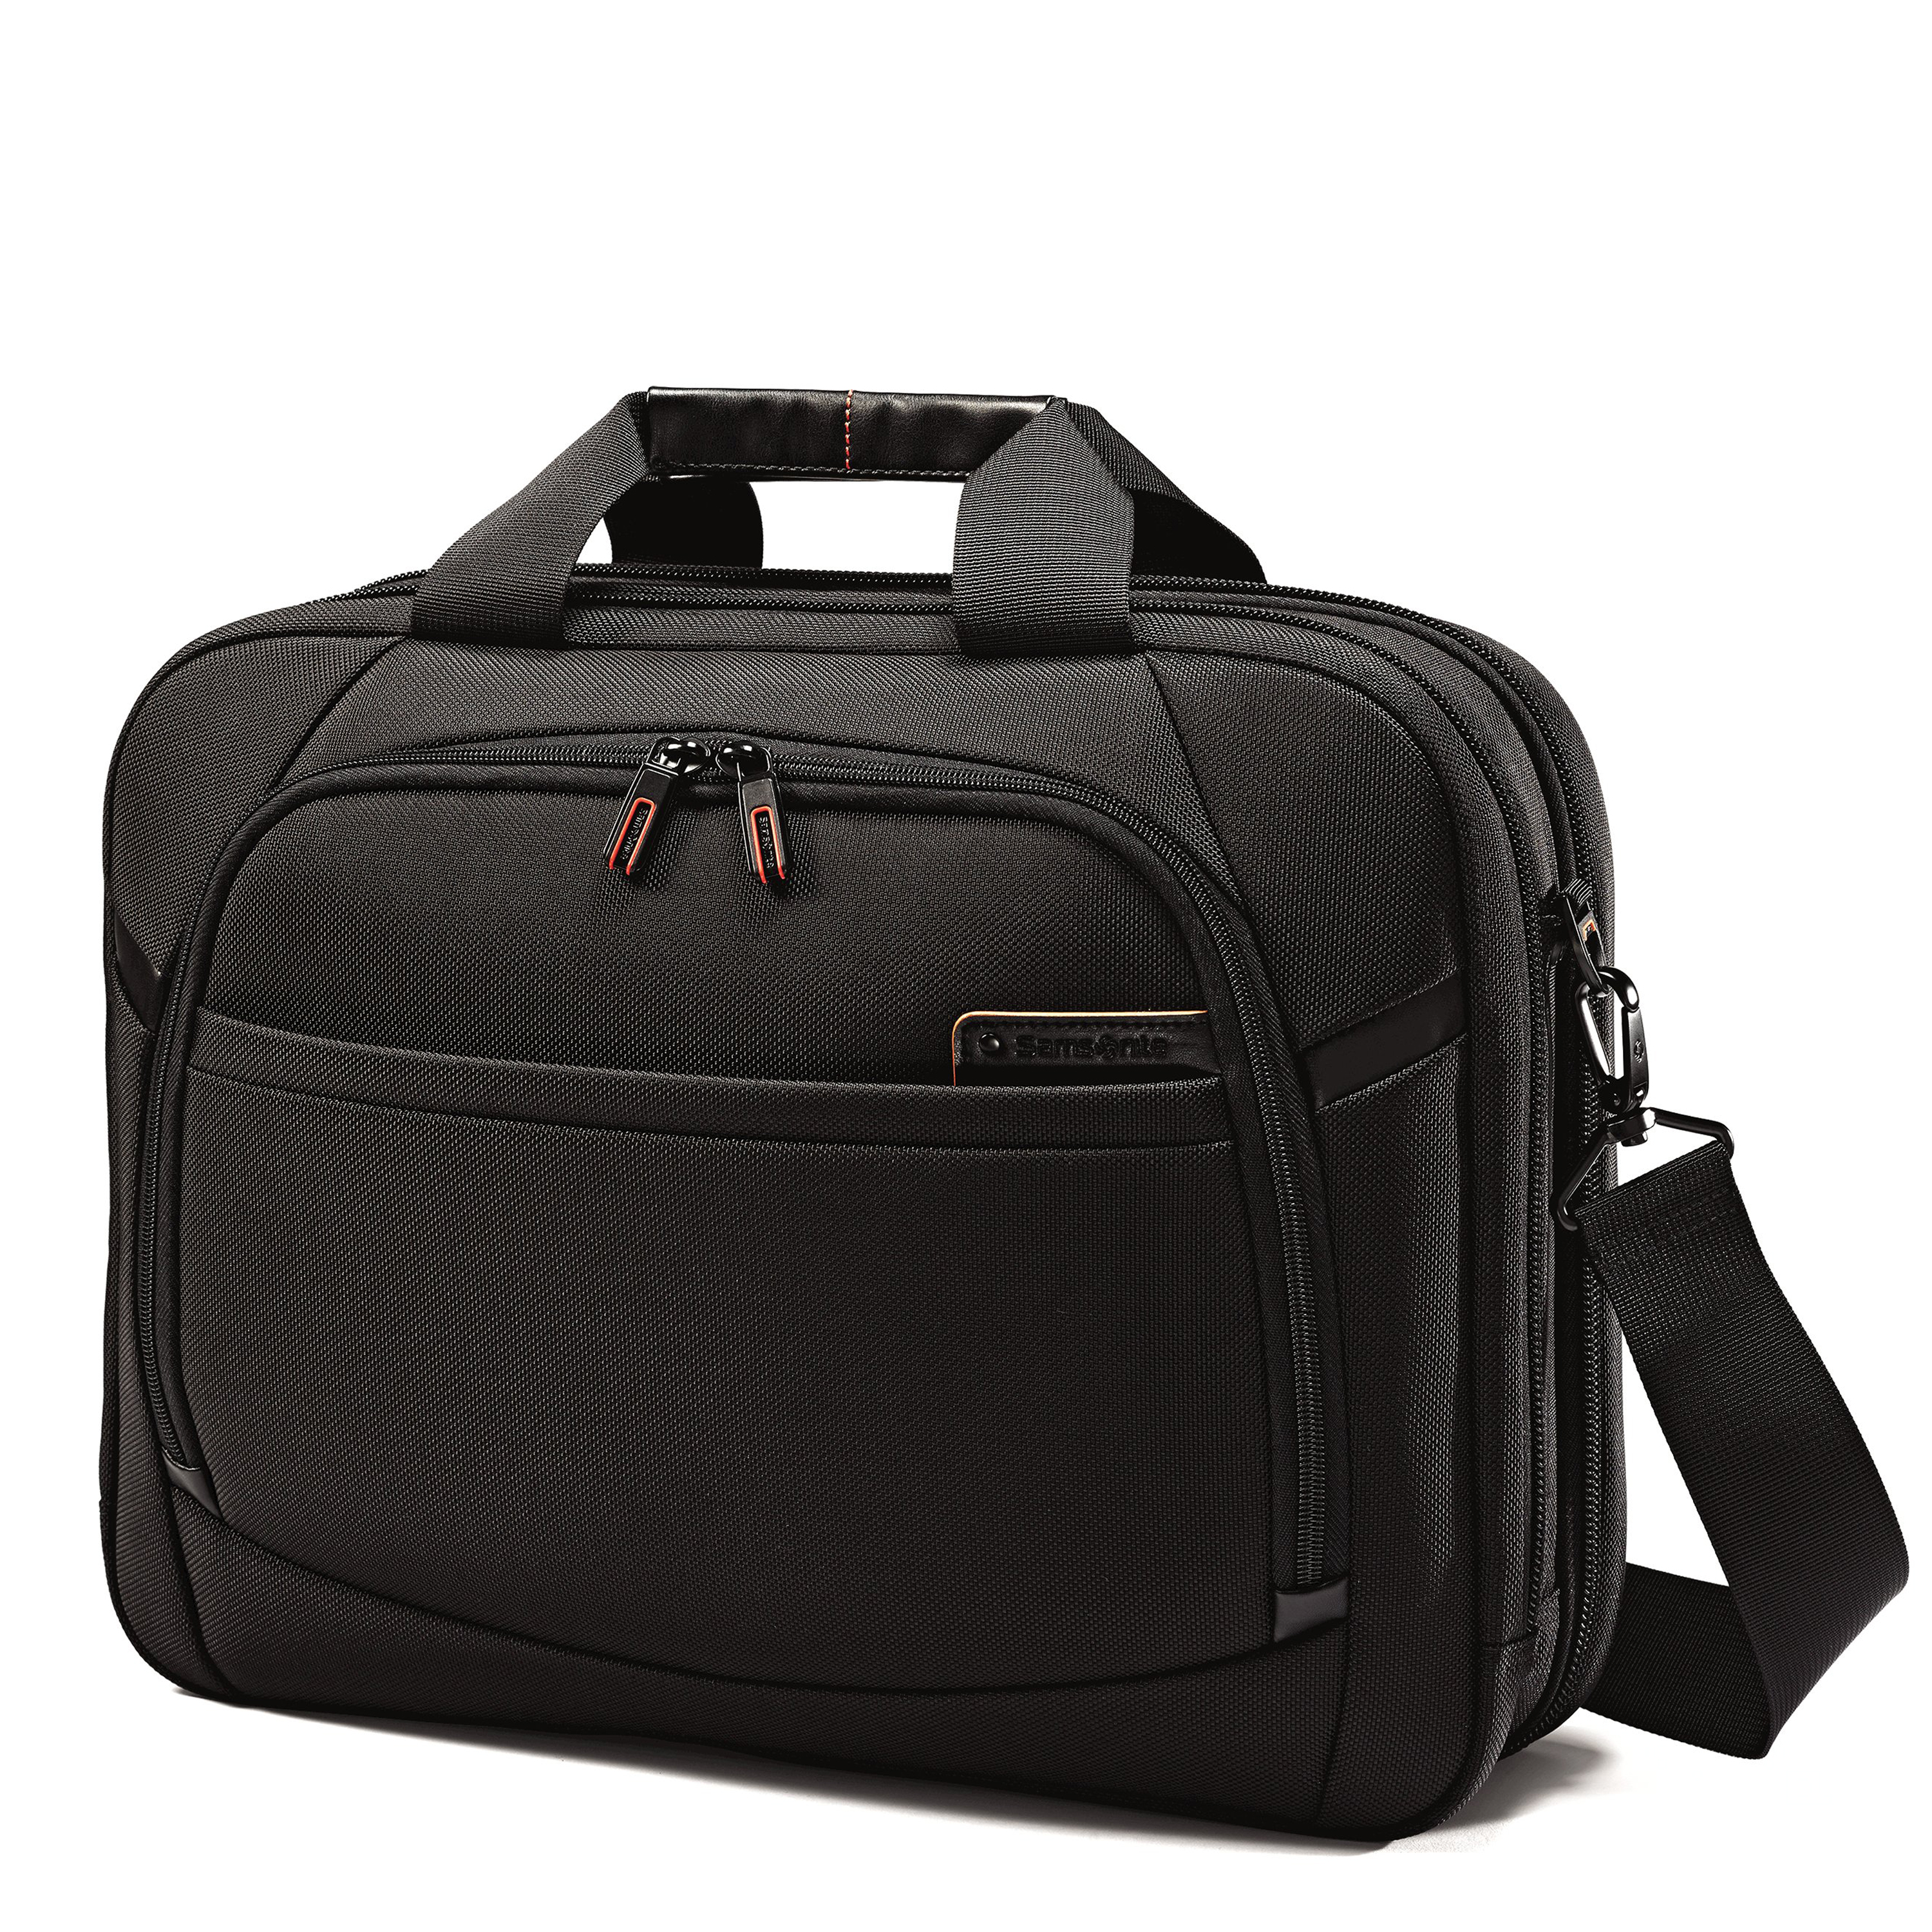 "Fits 13""-15.6"" laptops. Leather touch points. Poron® shock absorbers. Perfect Fit adjustable laptop system. Tablet/iPad® pocket. TSA Checkpoint friendly. Smart sleeve. Quick stash pocket. Cord/accessory pouch included. Weight: 3.2 lbs. Body Dimensions: 16.5"" x 12.75"" x 5.0"""